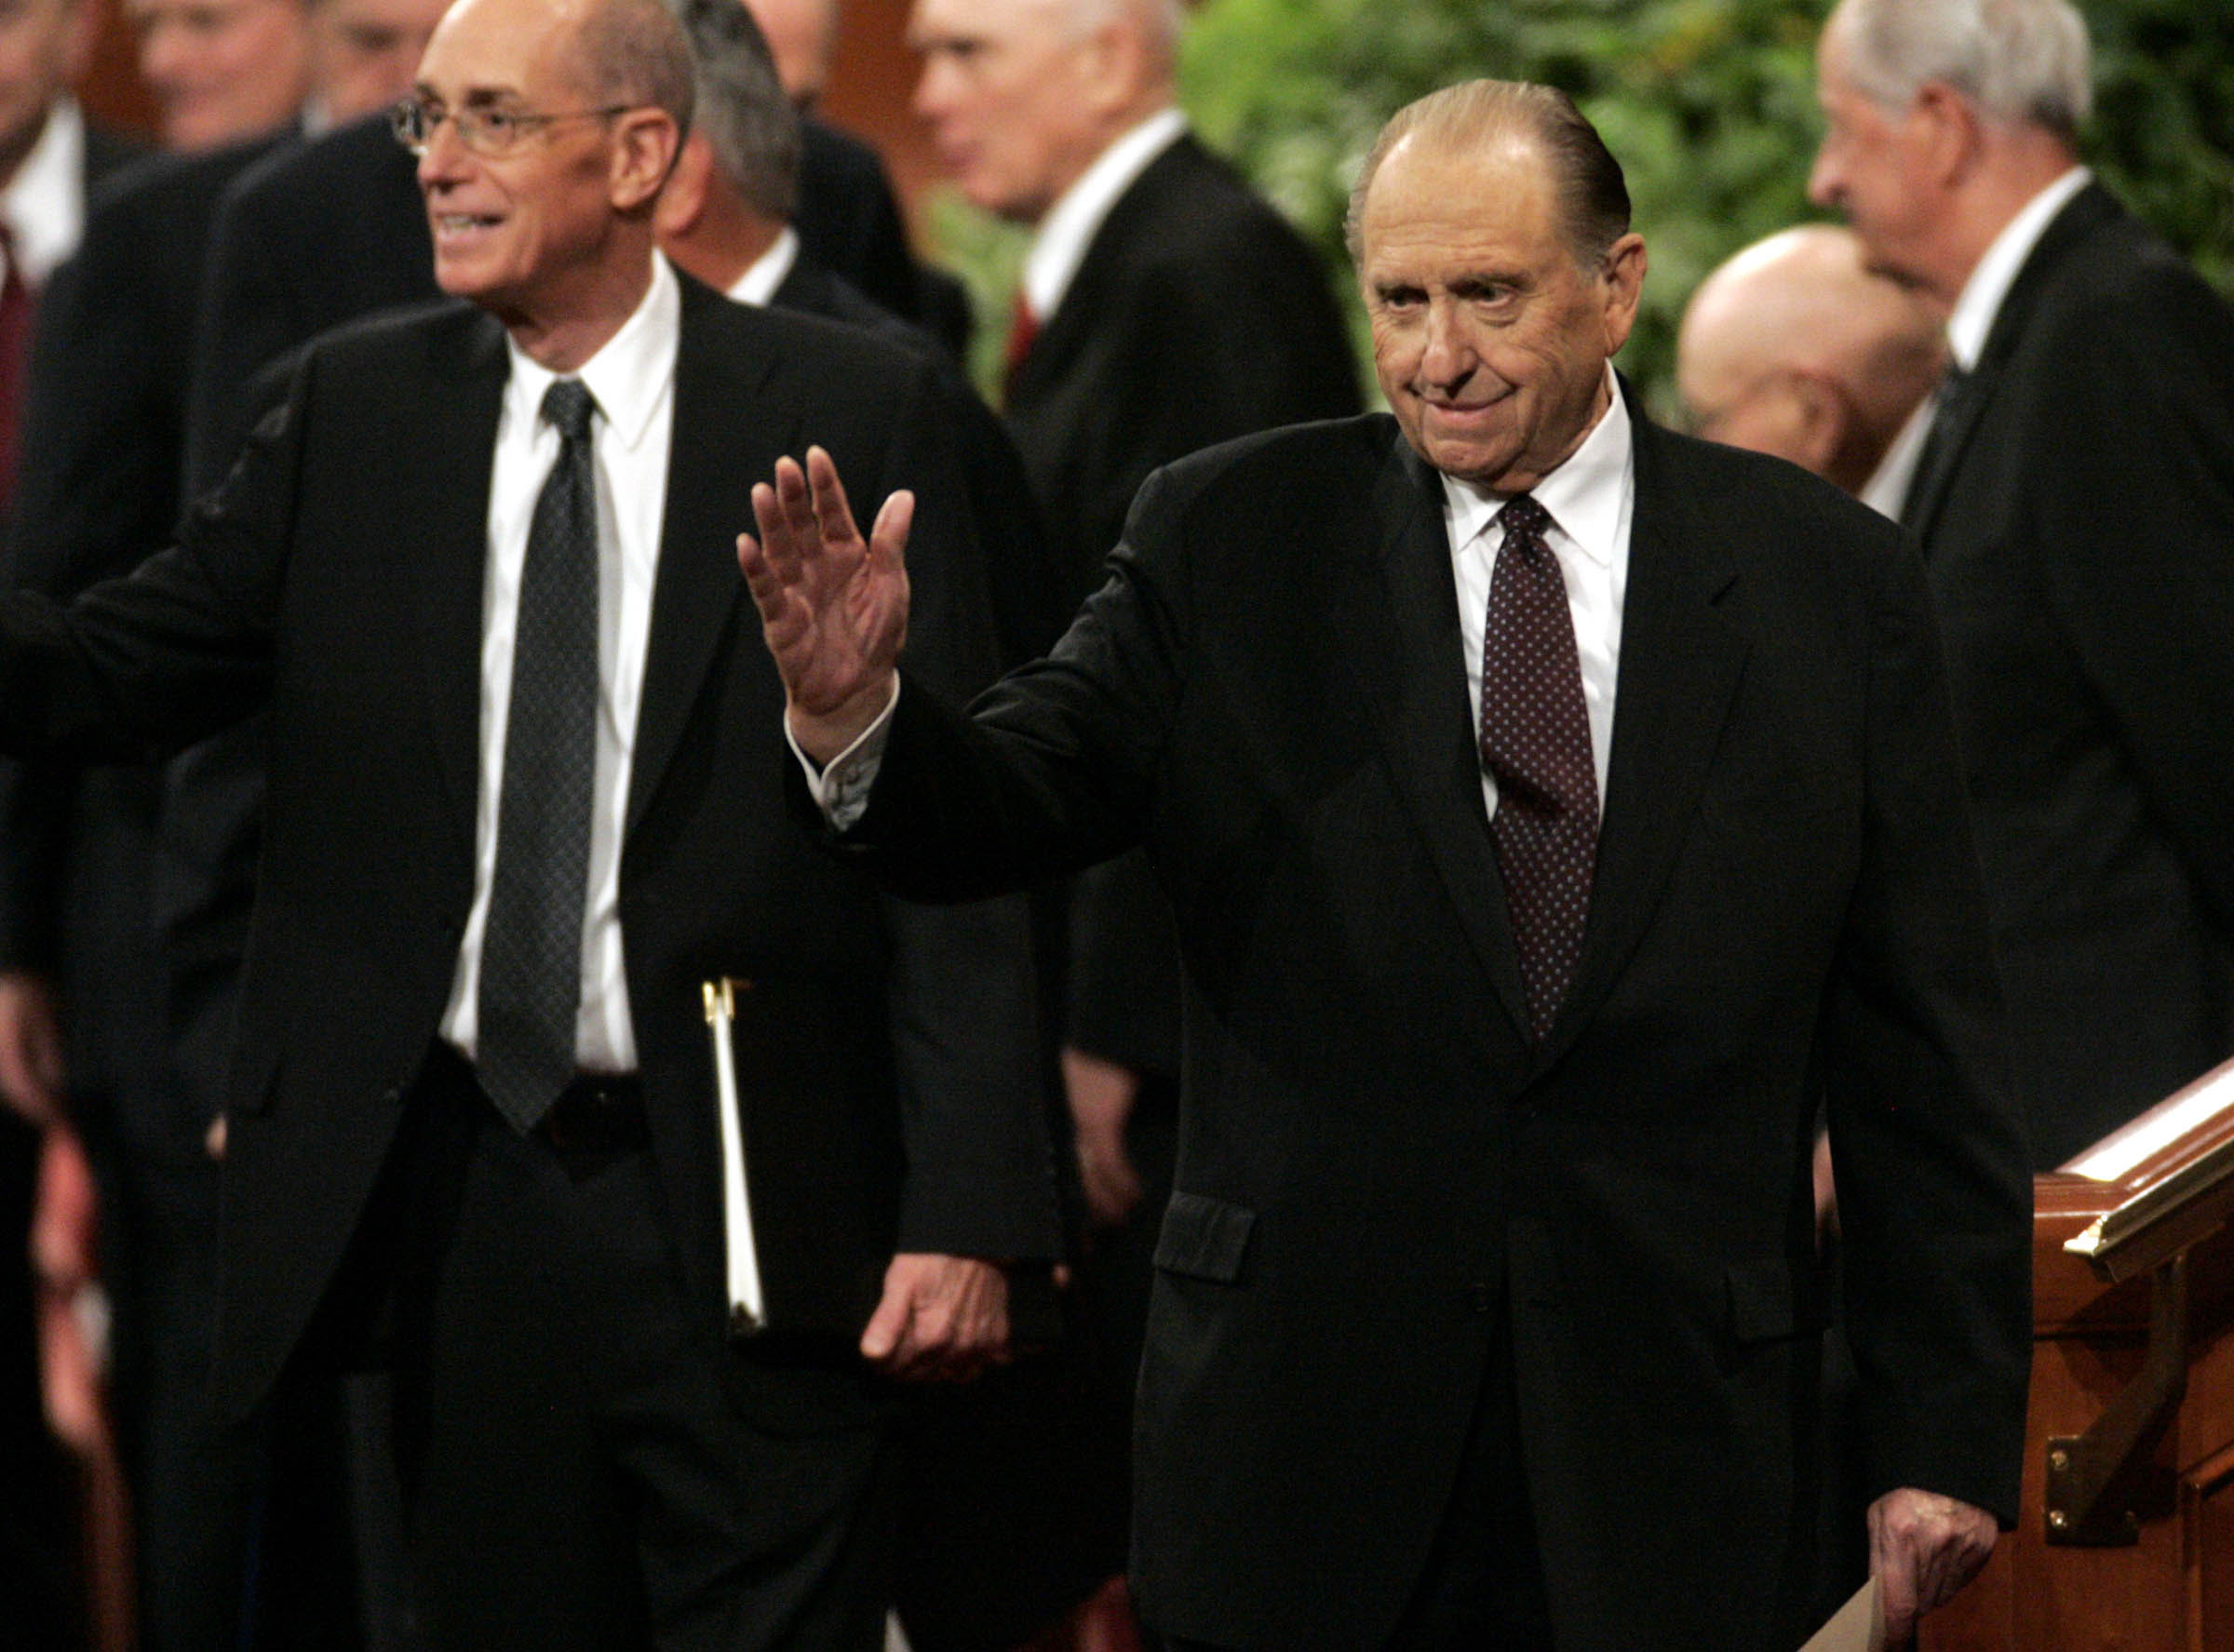 (Tribune file photo) LDS Church President Thomas Monson waves to the audience after speaking during the closing session of the LDS General Conference on October 5, 2008.